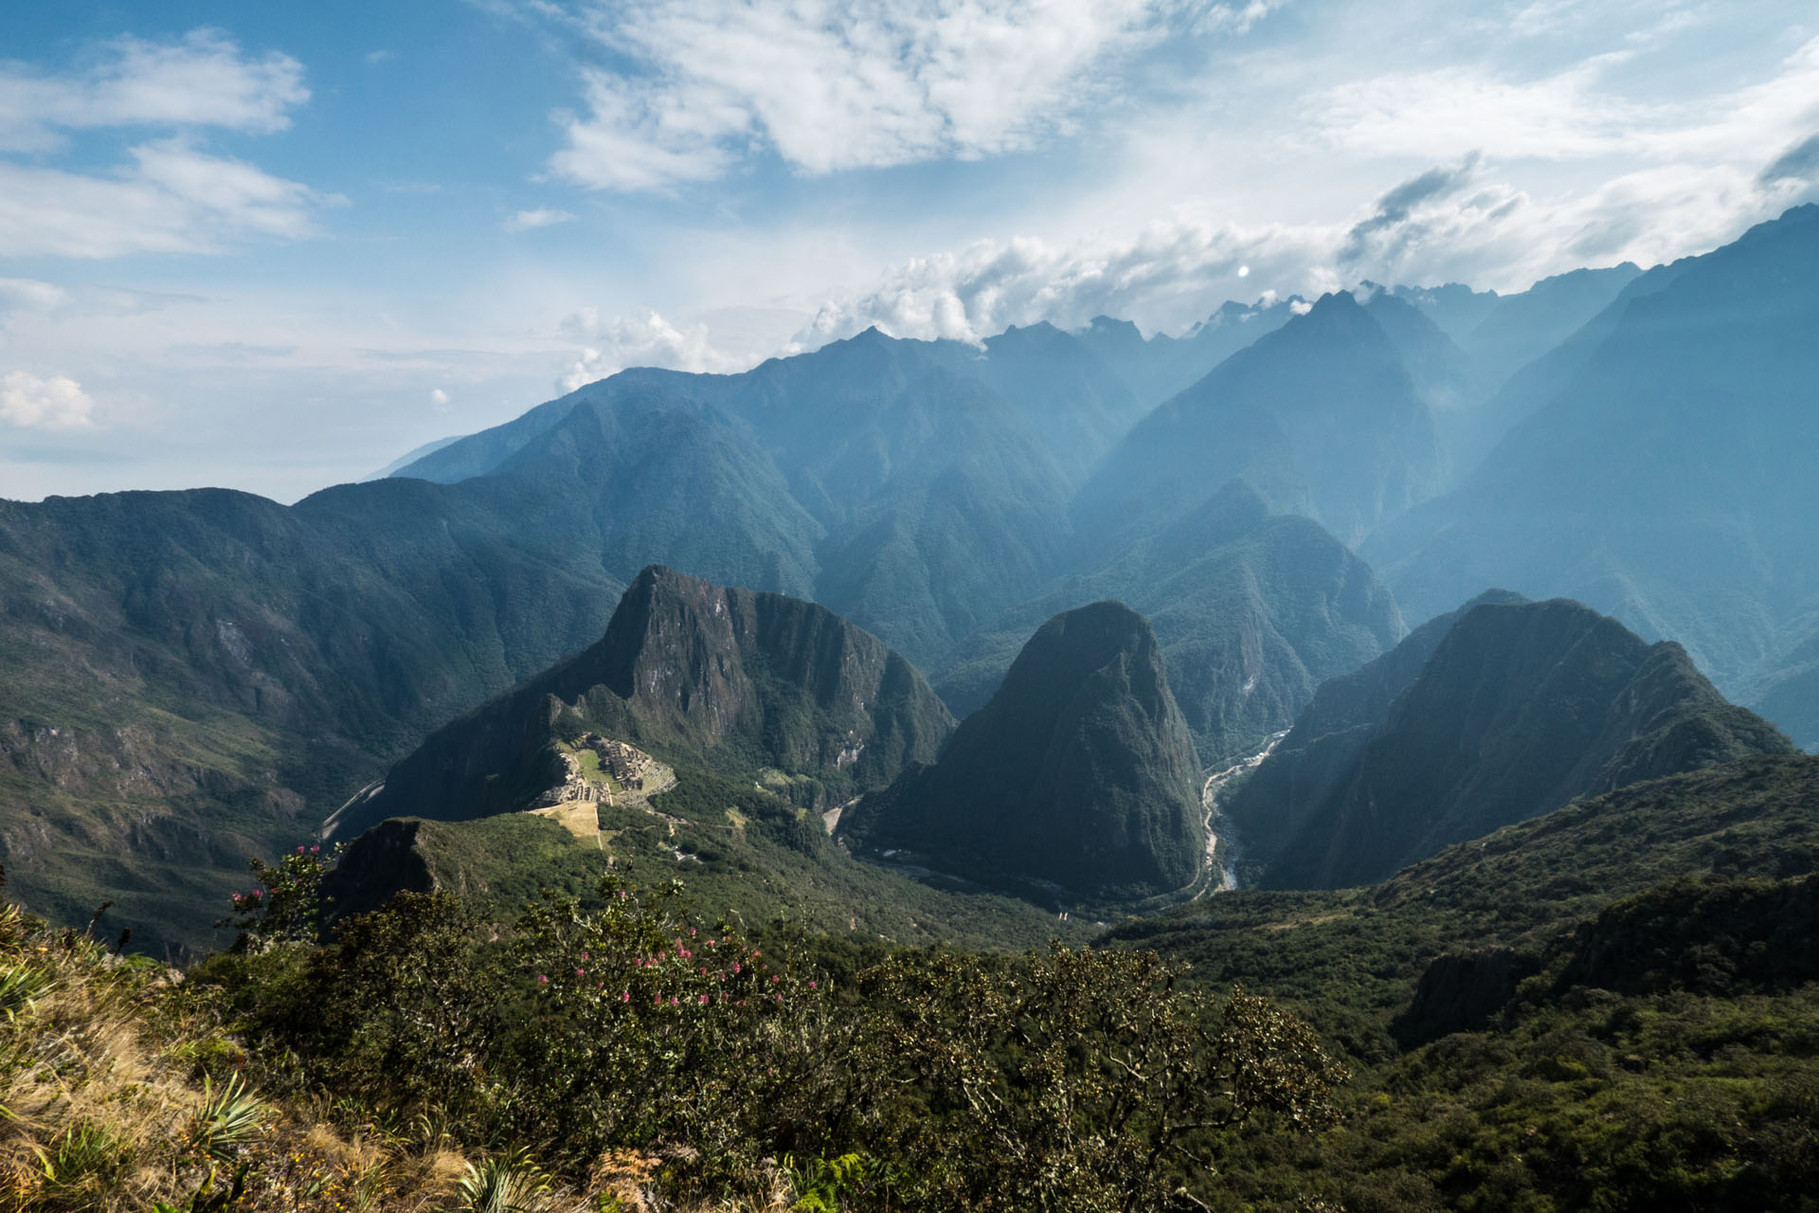 Machu Picchu (2400 masl), seen from Machu Picchu Mountain (3100 masl) [Peru, 2014]